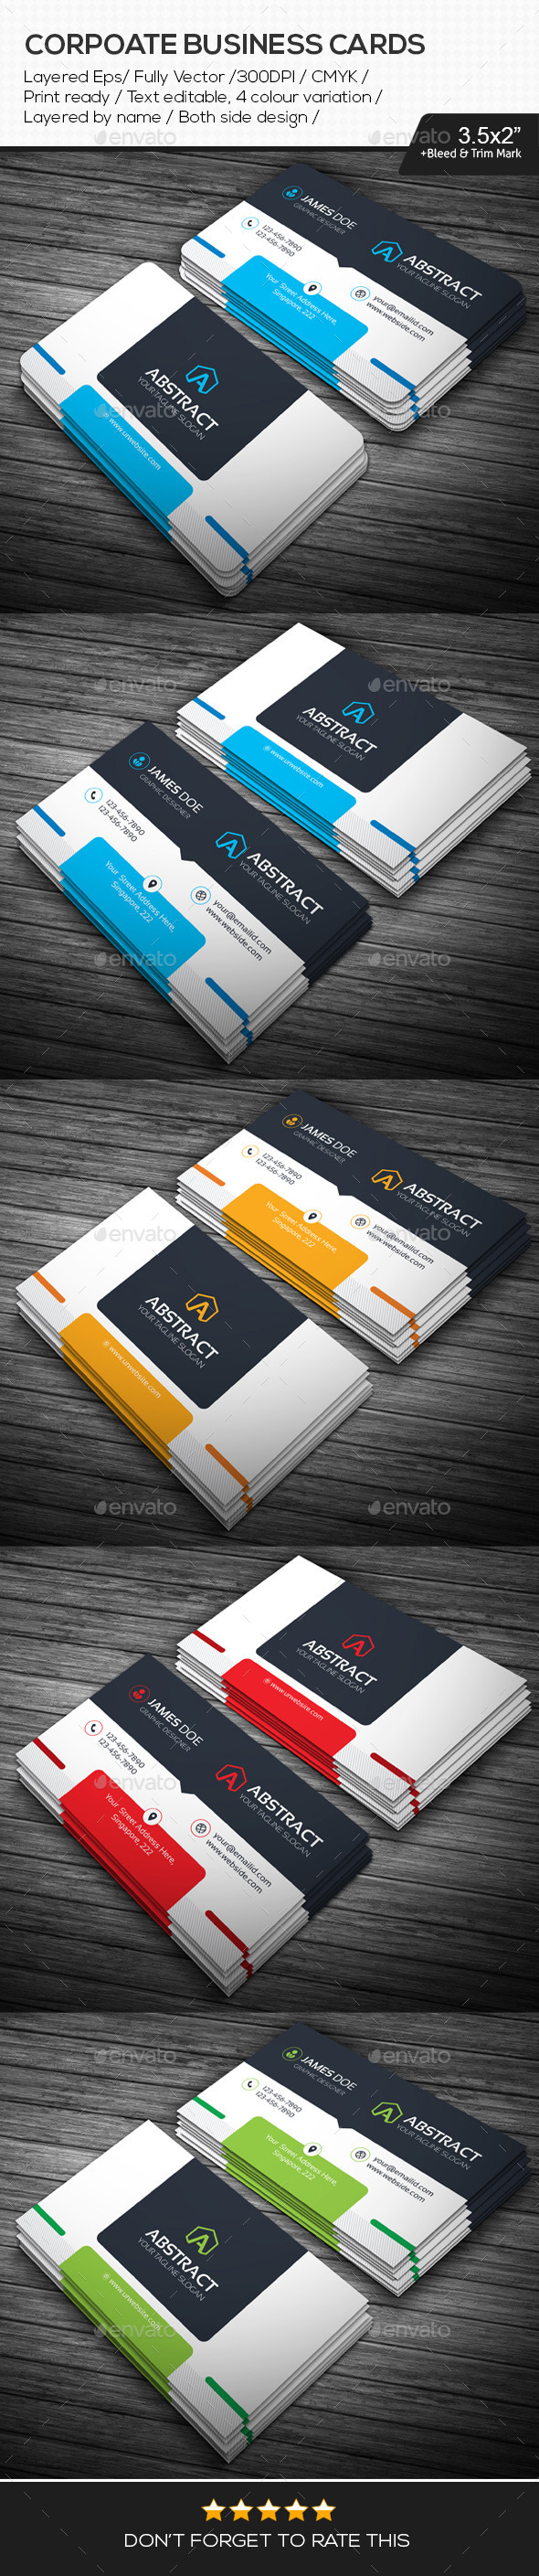 GraphicRiver Creative Corporate Business Cards 11005173